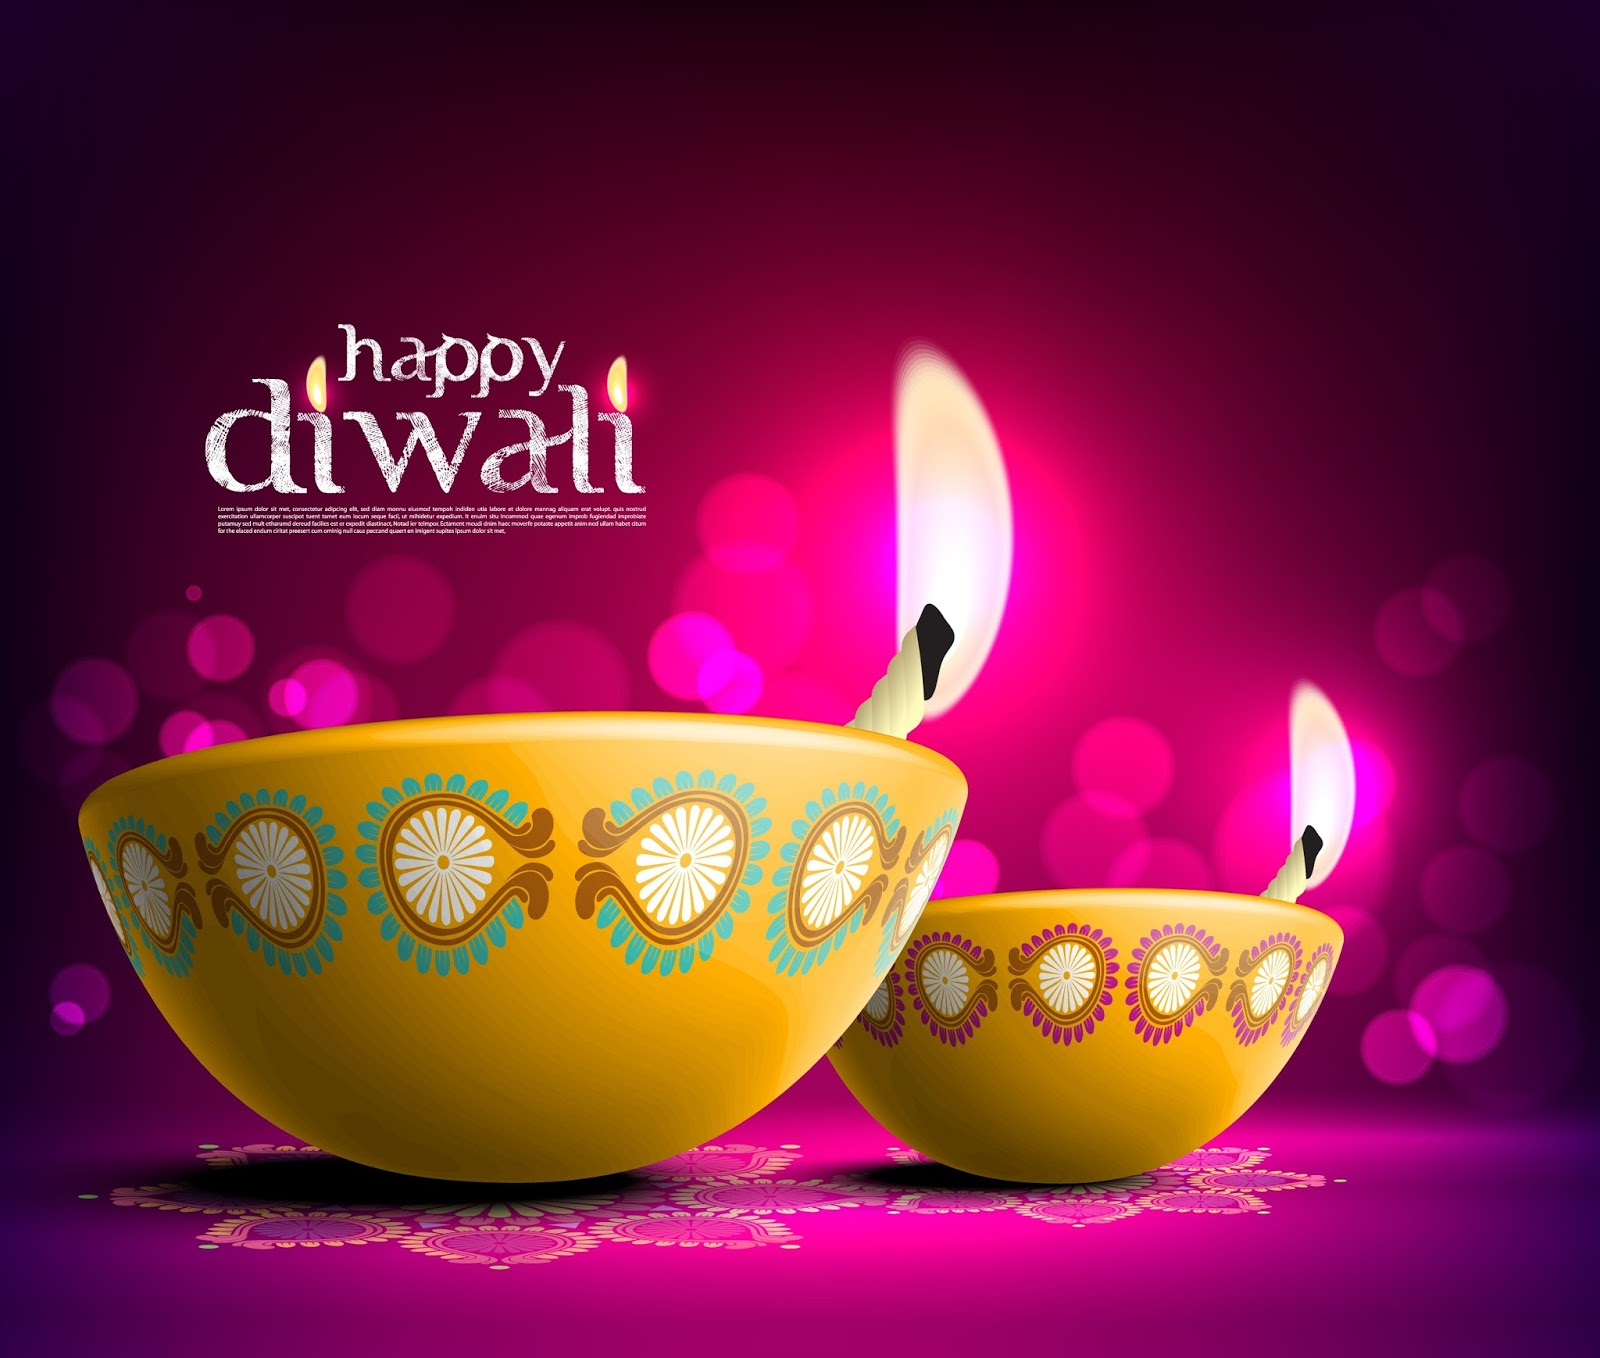 Wallpaper download diwali - Happy Diwali Wallpaper Happy Diwali Images Happy Diwali Sms Happy Diwali Wish